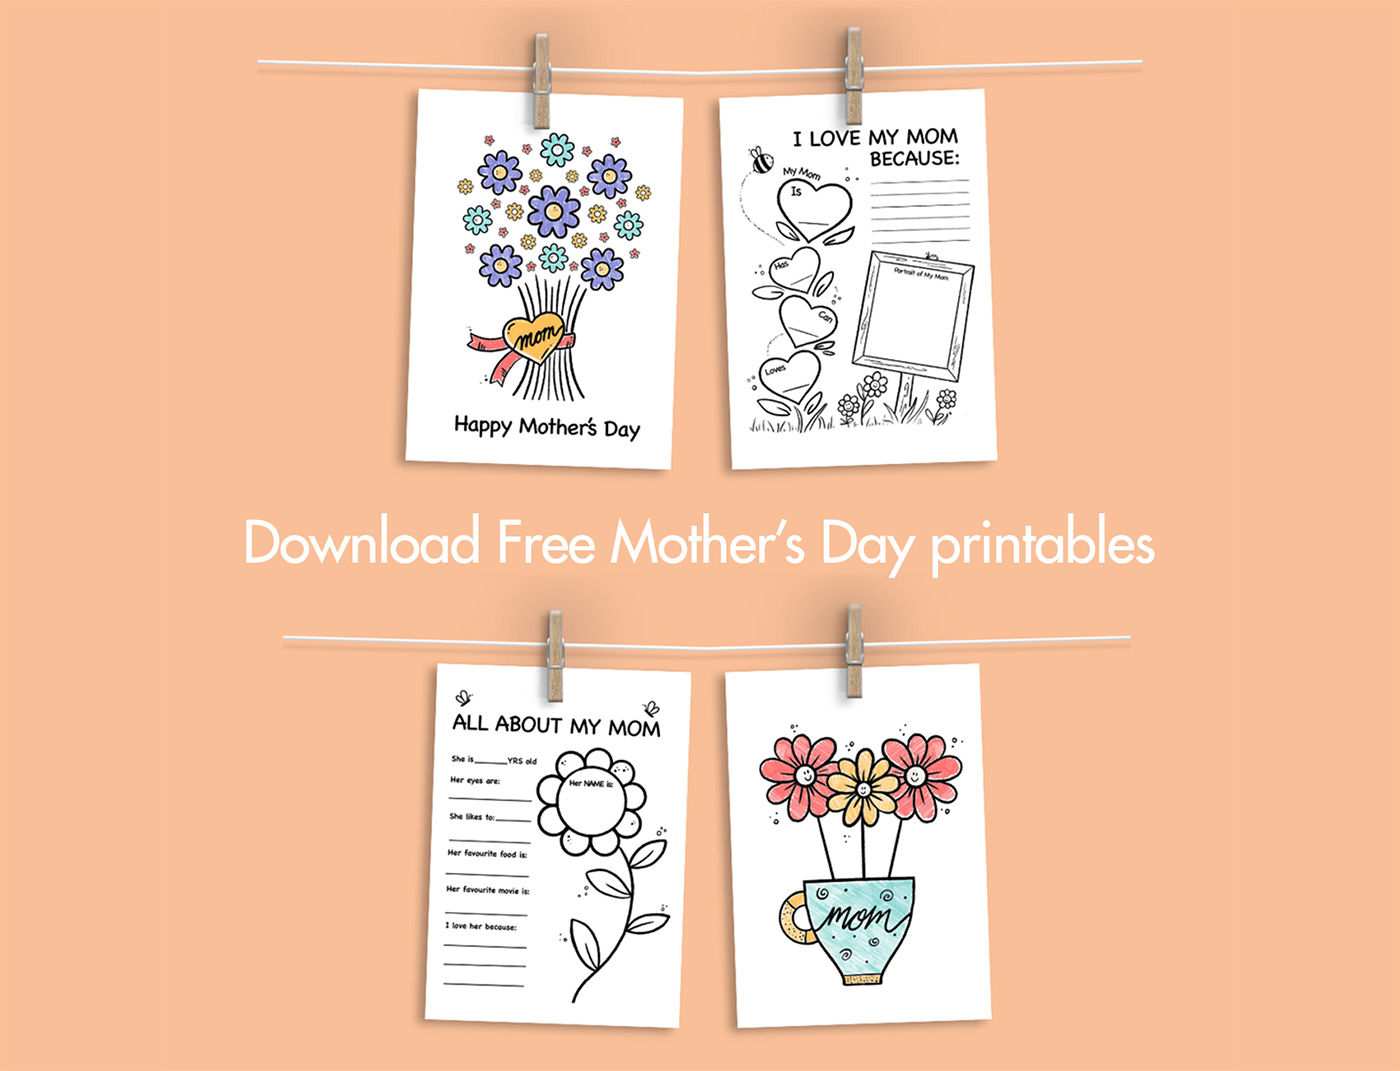 Free Mothers Day Printables